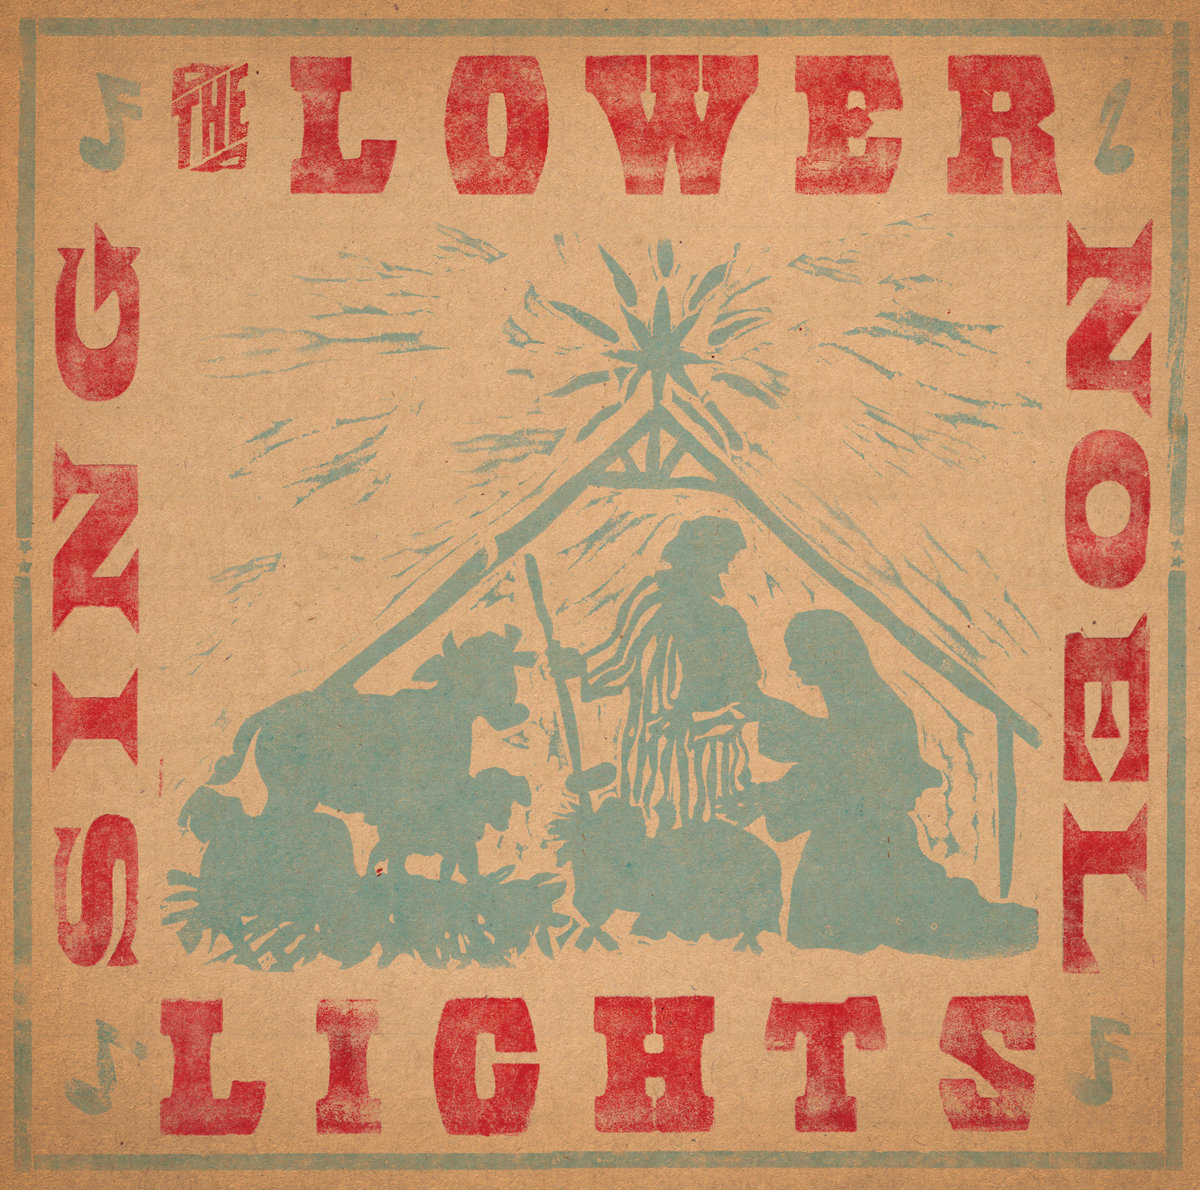 The Lower Lights Sing Noel | The Lower Lights